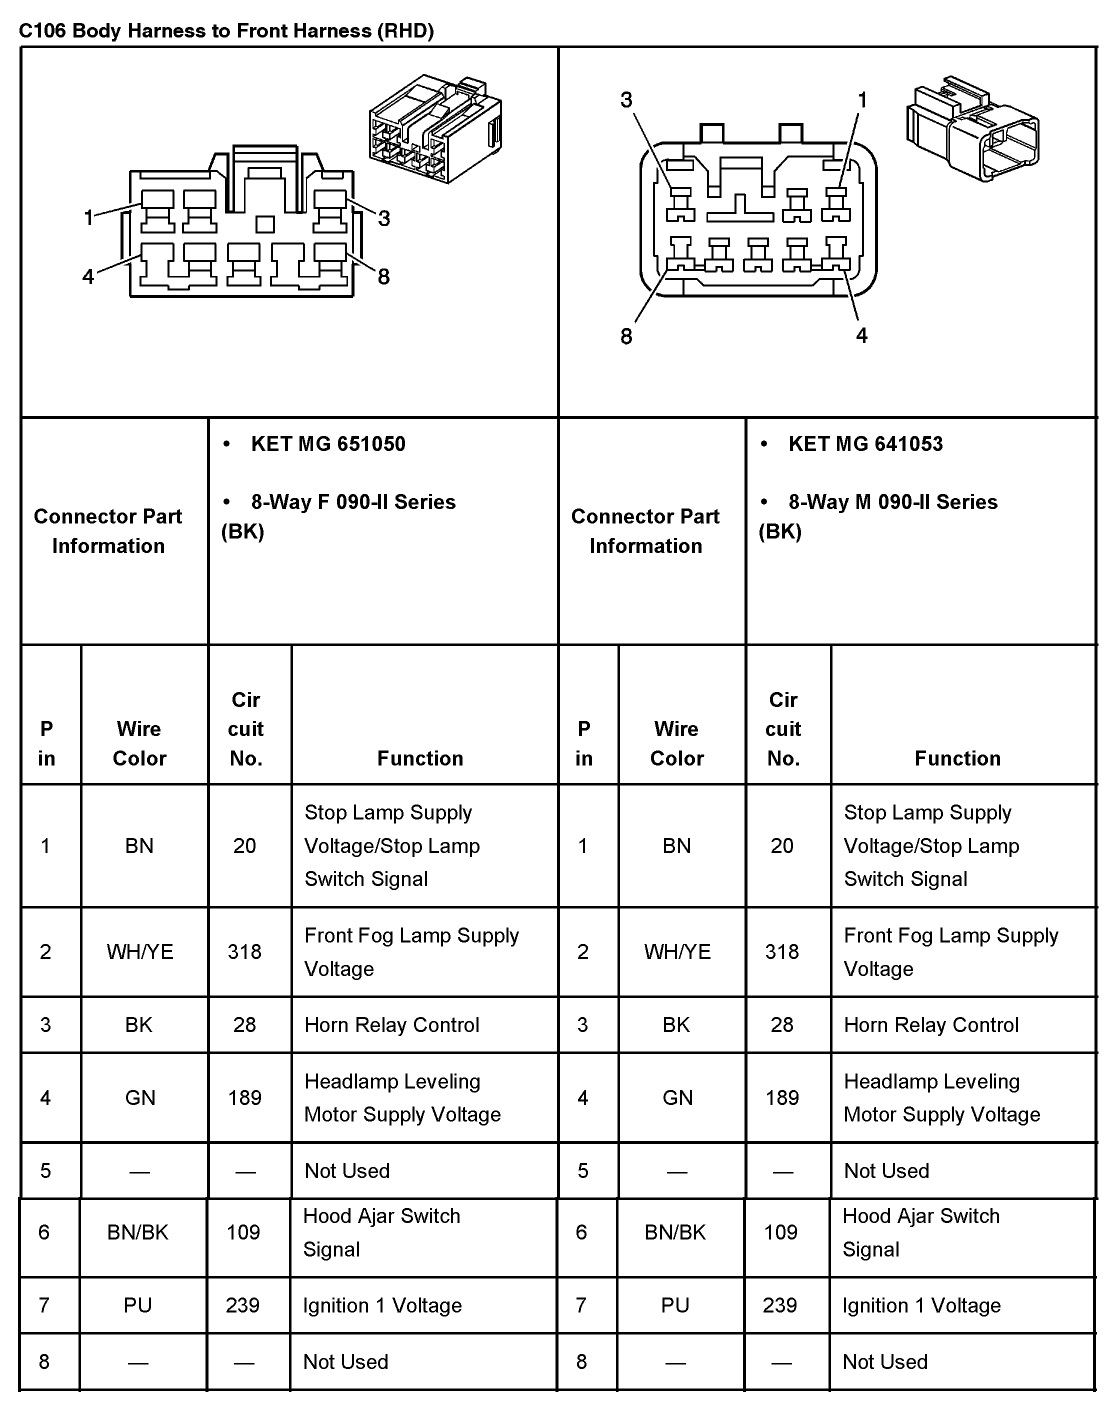 7331d1383704576 2005 aveo master connector list diagrams conn3 jpg 2005 aveo master connector list and diagrams 2009 chevy aveo fuse box diagram at pacquiaovsvargaslive.co